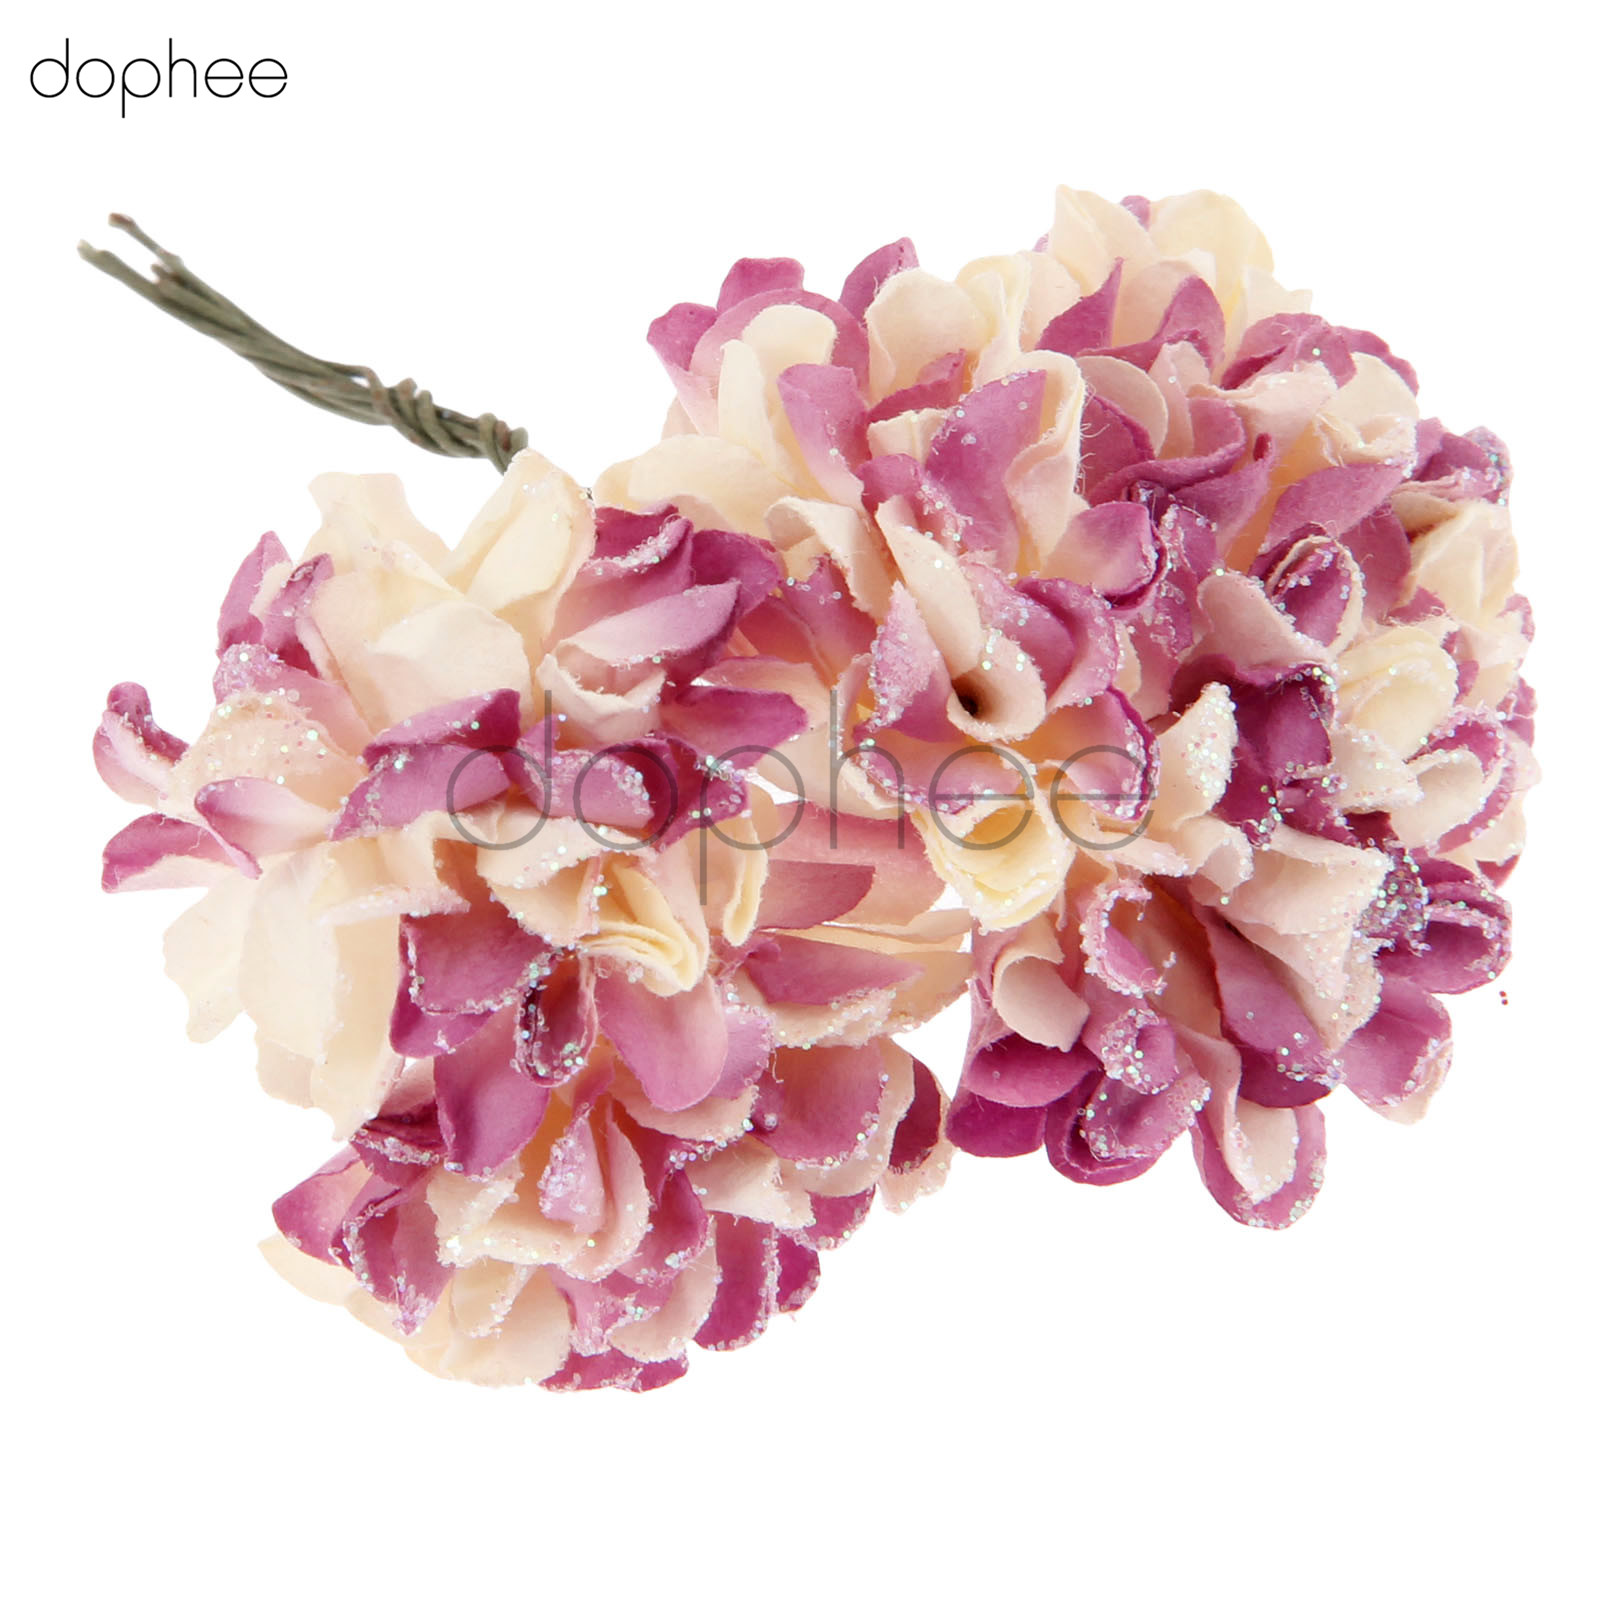 Dophee 144pcs Glittered Artificial Carnations Handmade Mulberry Paper Flowers For Scrapbooking Wedding Cardmaking In Artificial Dried Flowers From